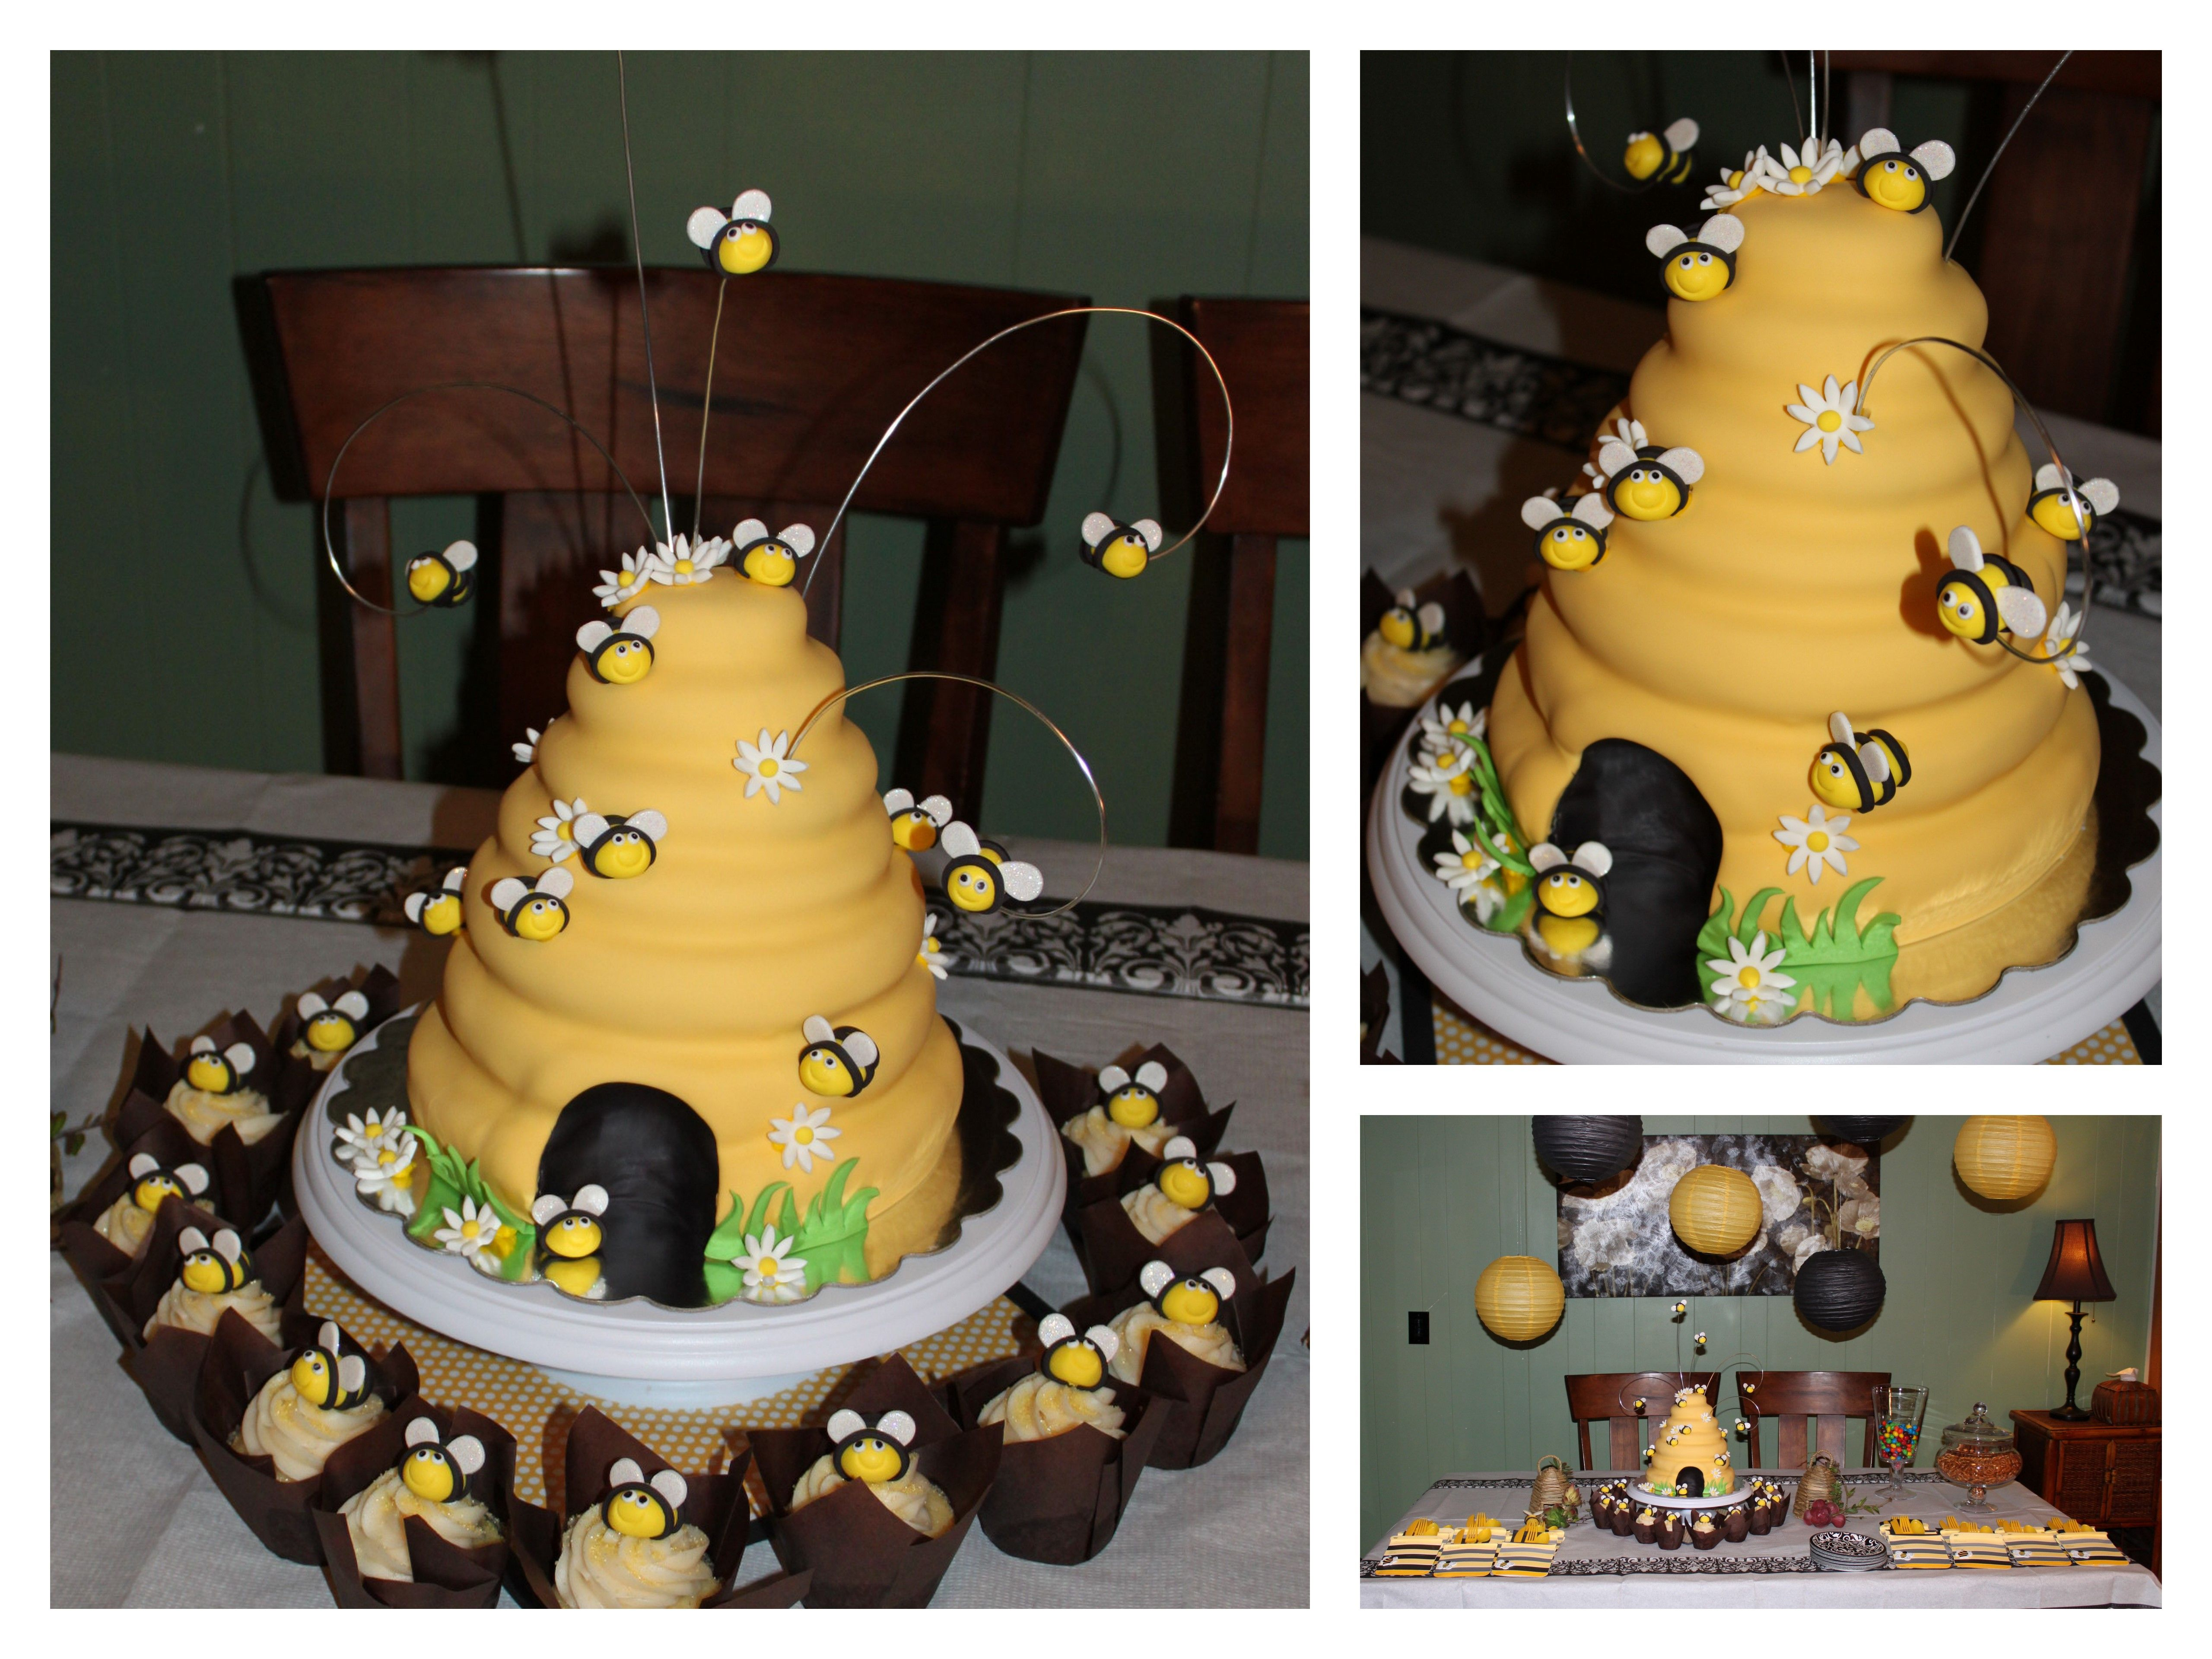 Jenny S 39th Birthday Cake Bee Cause She Is The Queen Bee With